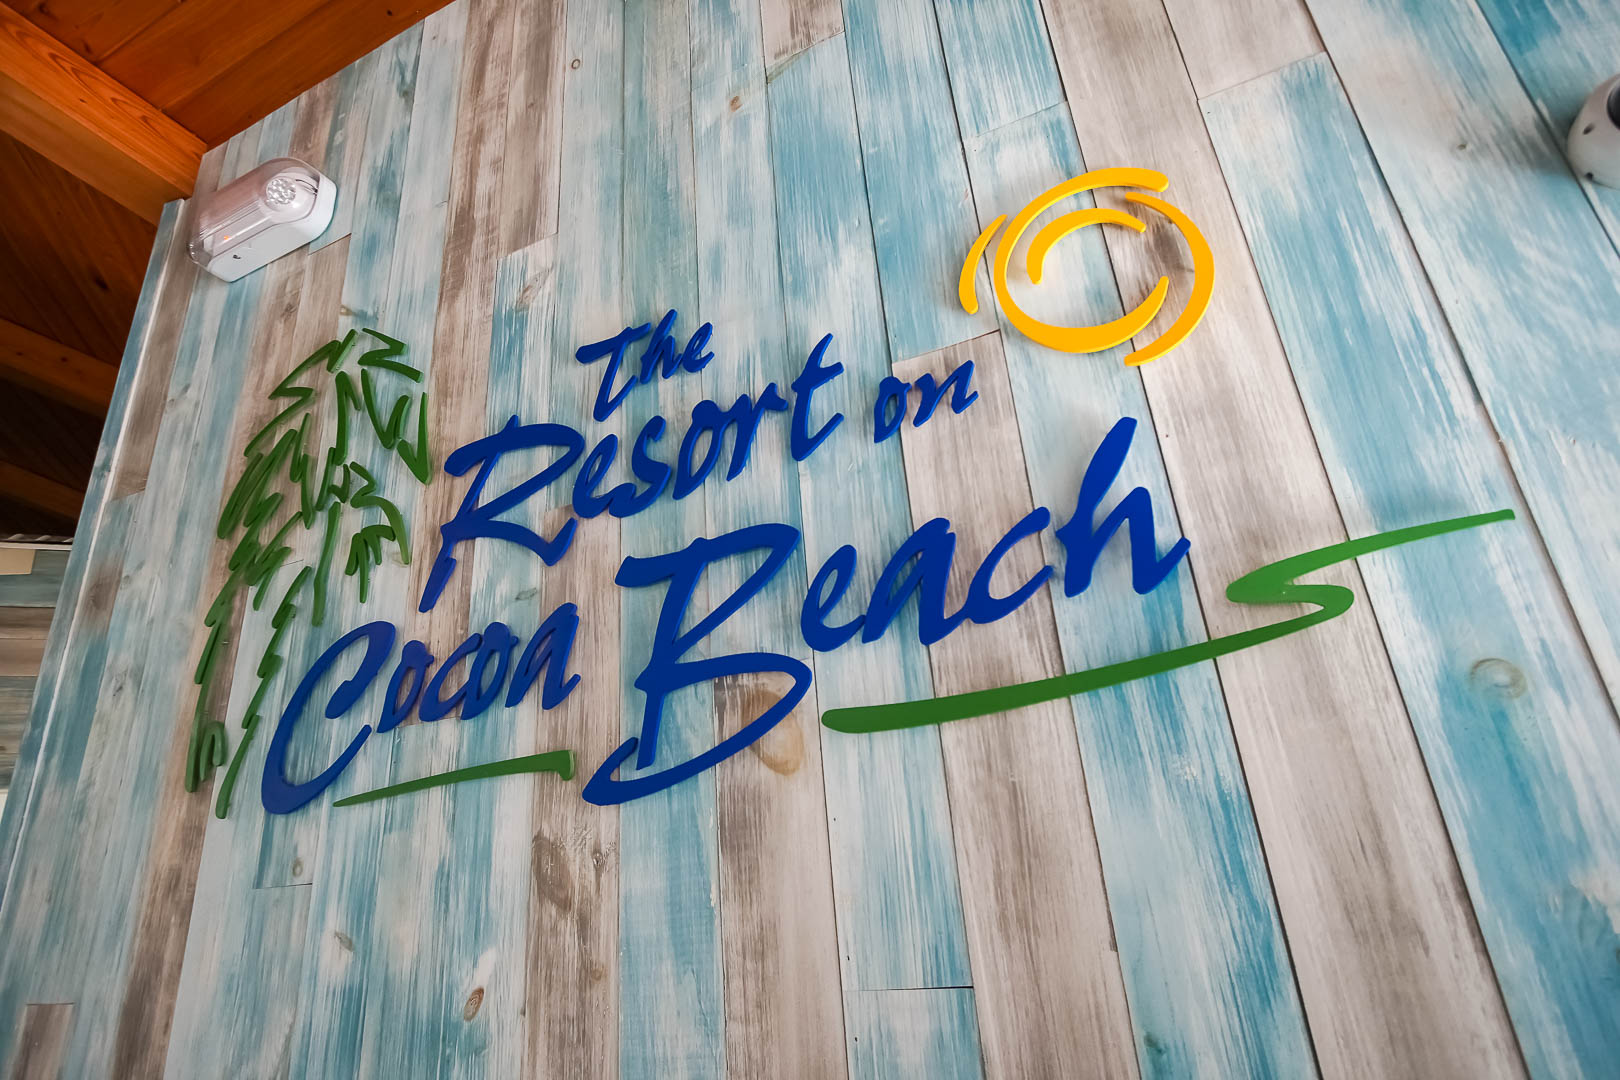 The colorful resort signage at VRI's The Resort on Cocoa Beach in Florida.